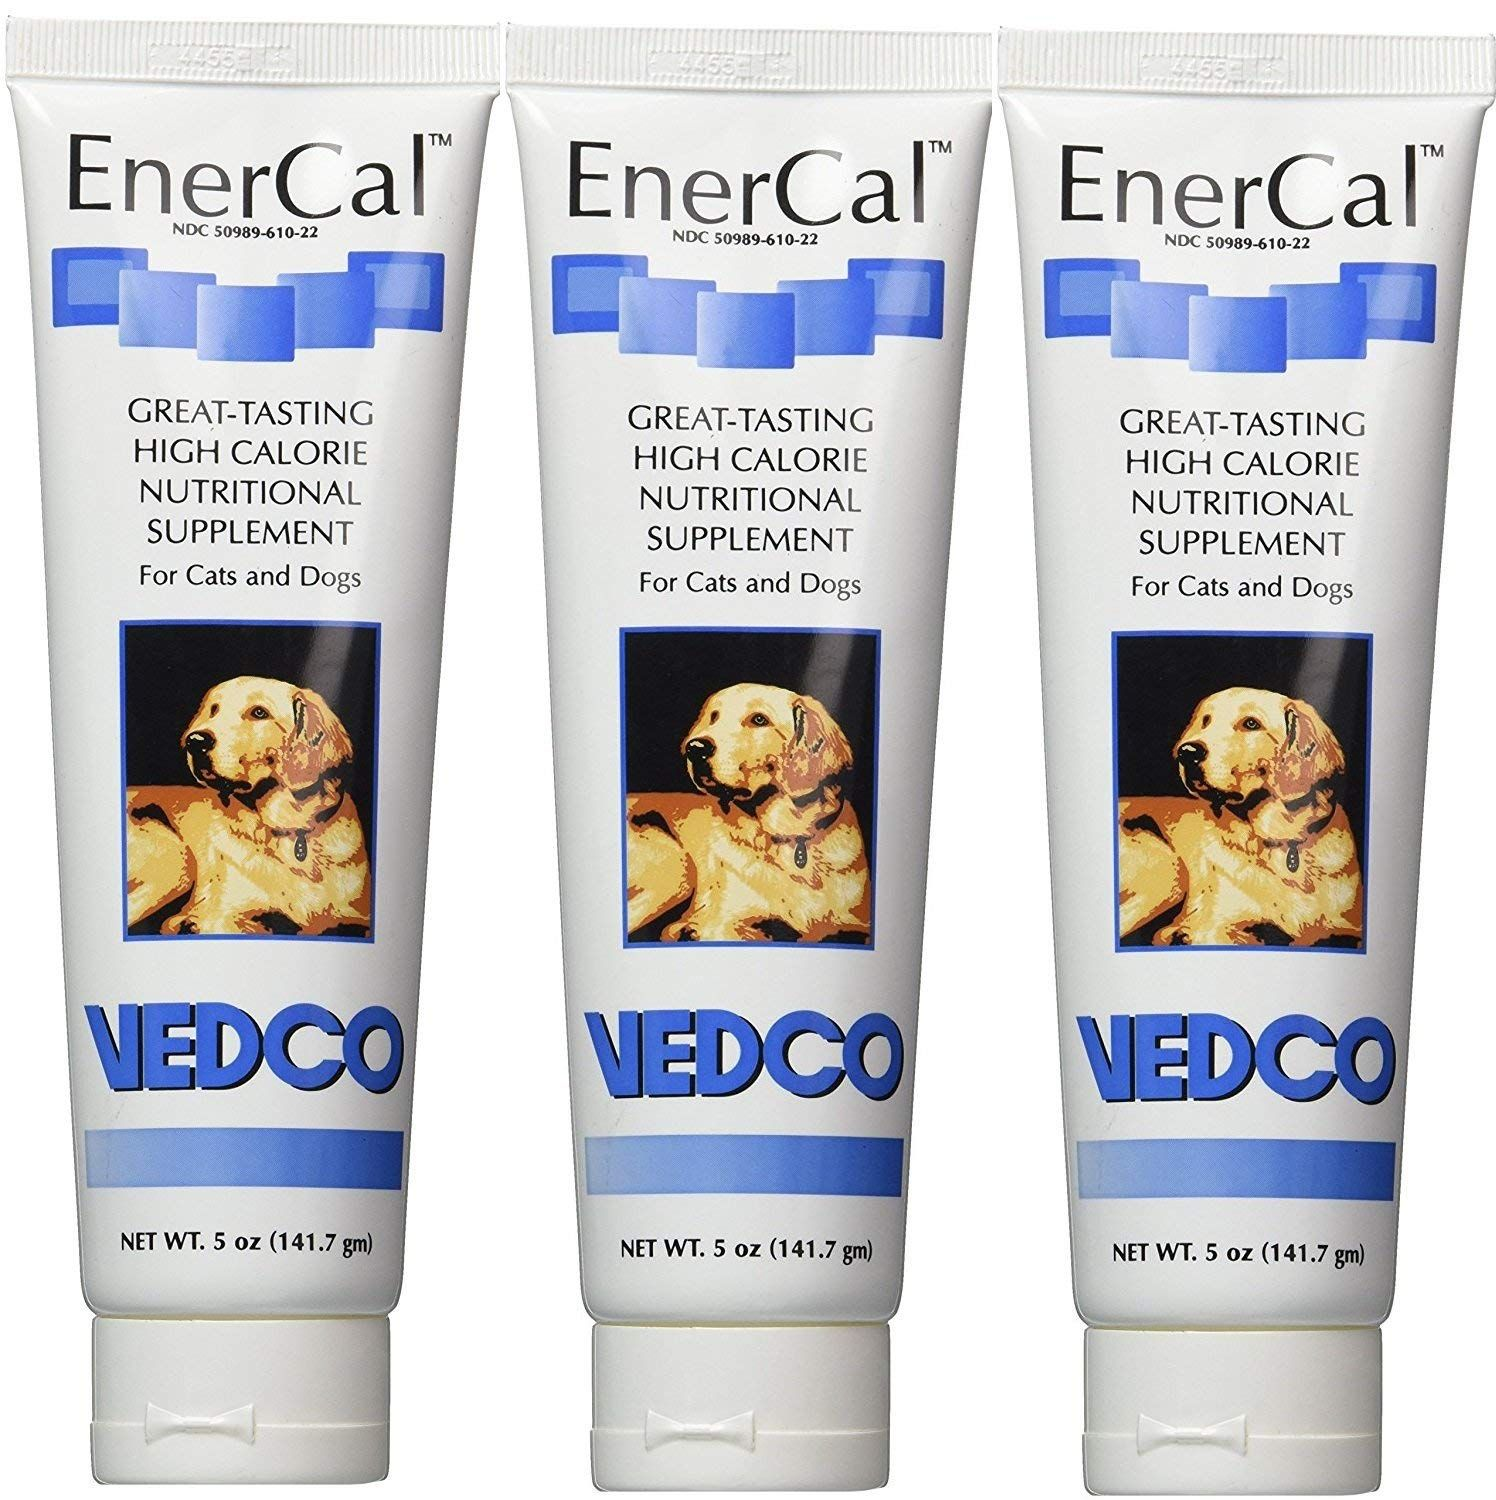 EnerCal High Calorie Nutrition Suppliment For Cats and